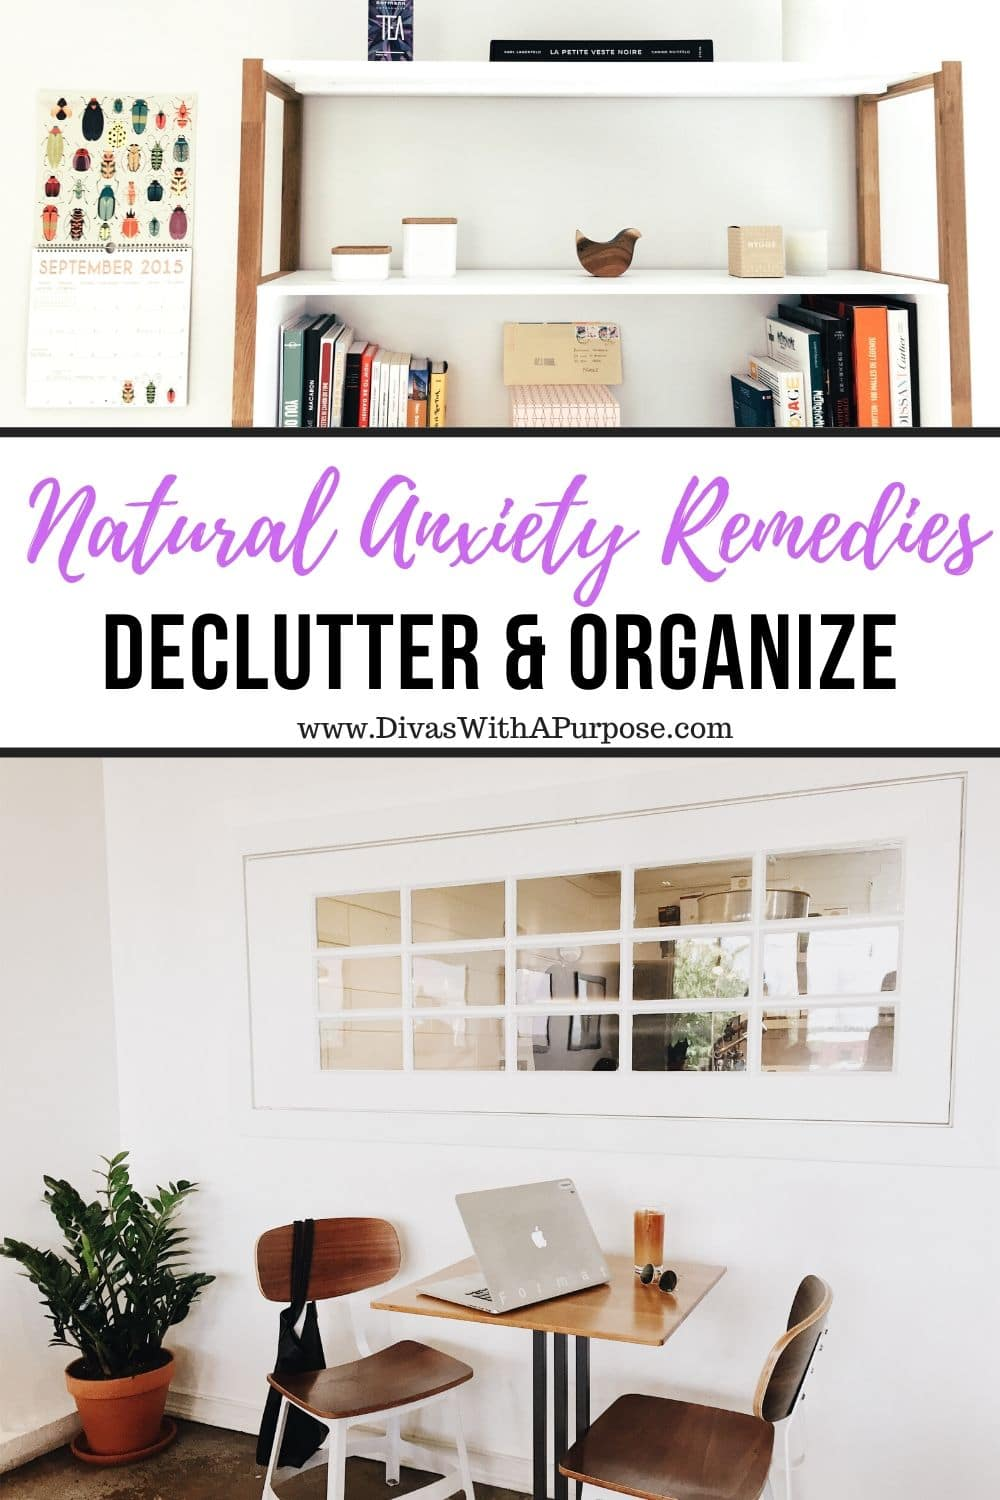 Decluttering and organizing are natural anxiety remedies